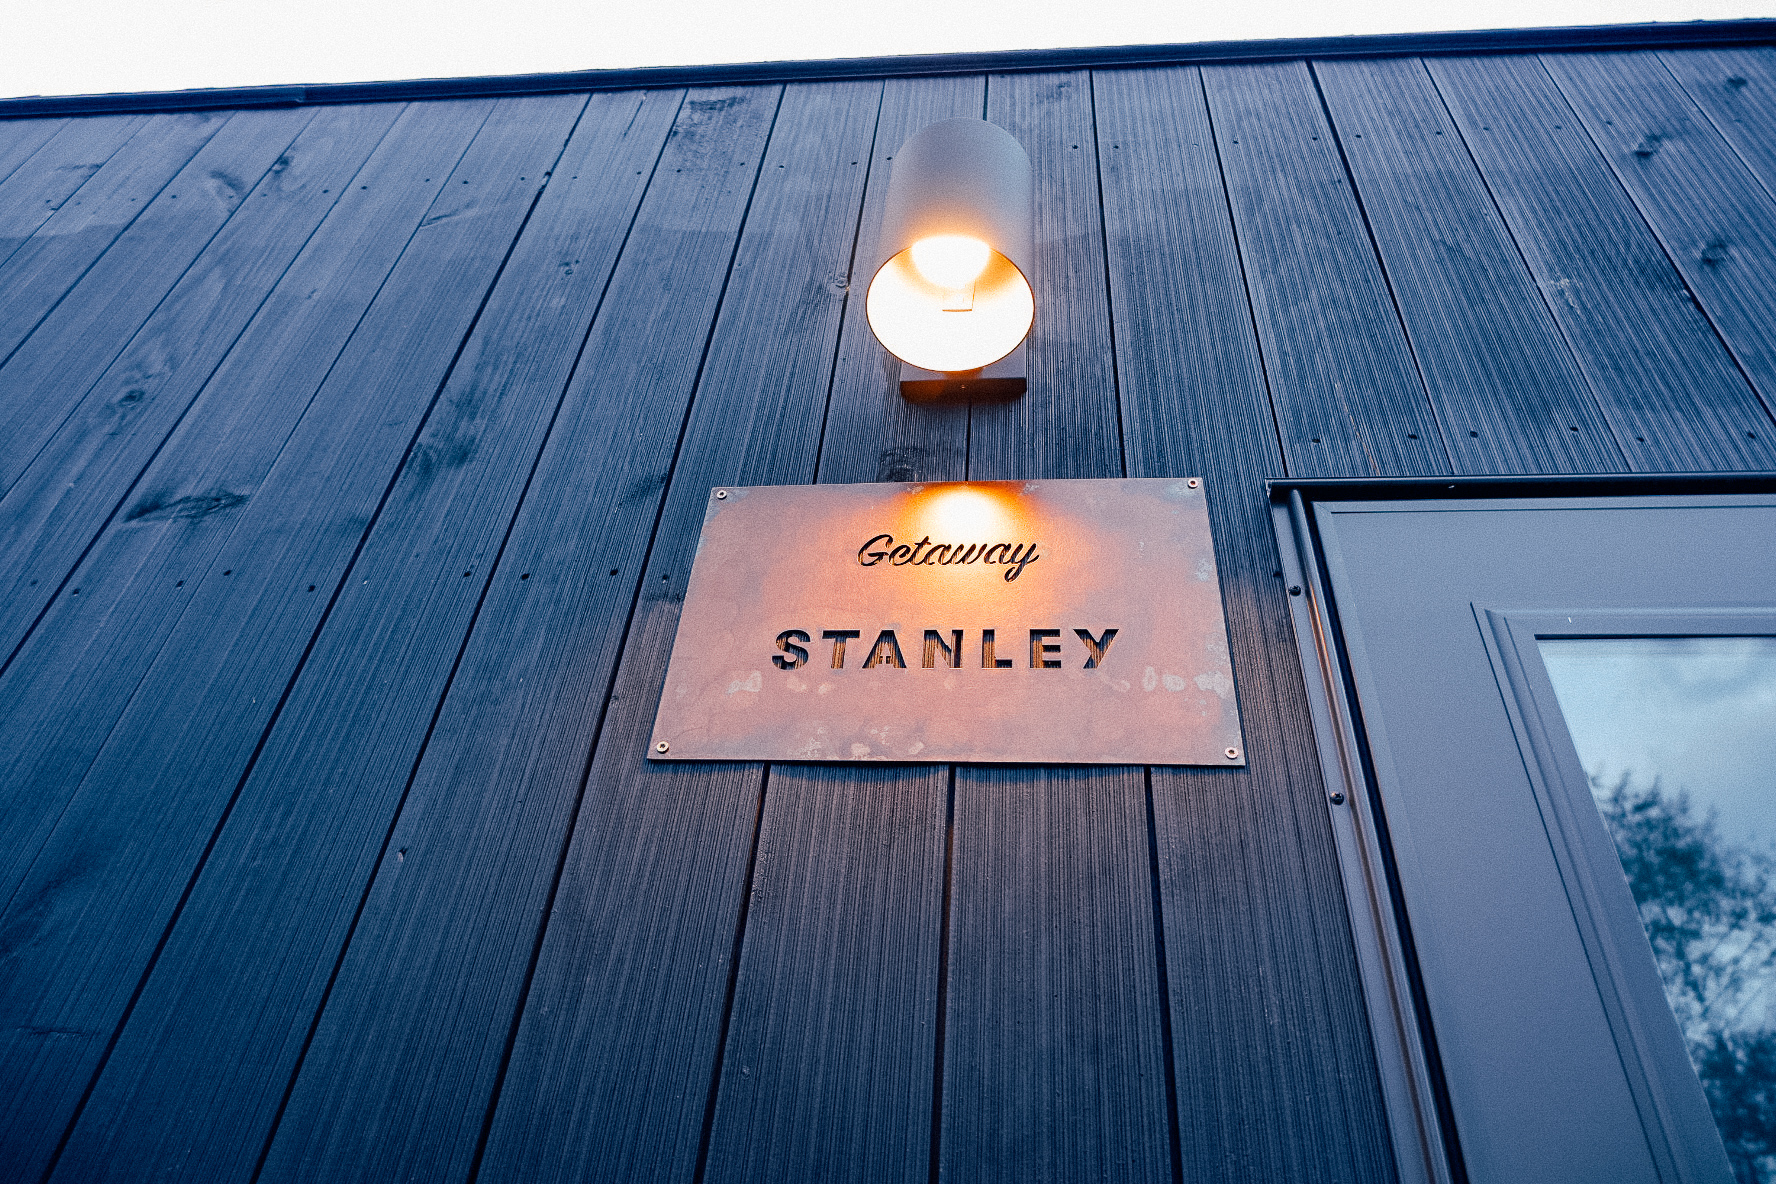 each cabin is uniquely named after grandparents of Getaway staff and guests.